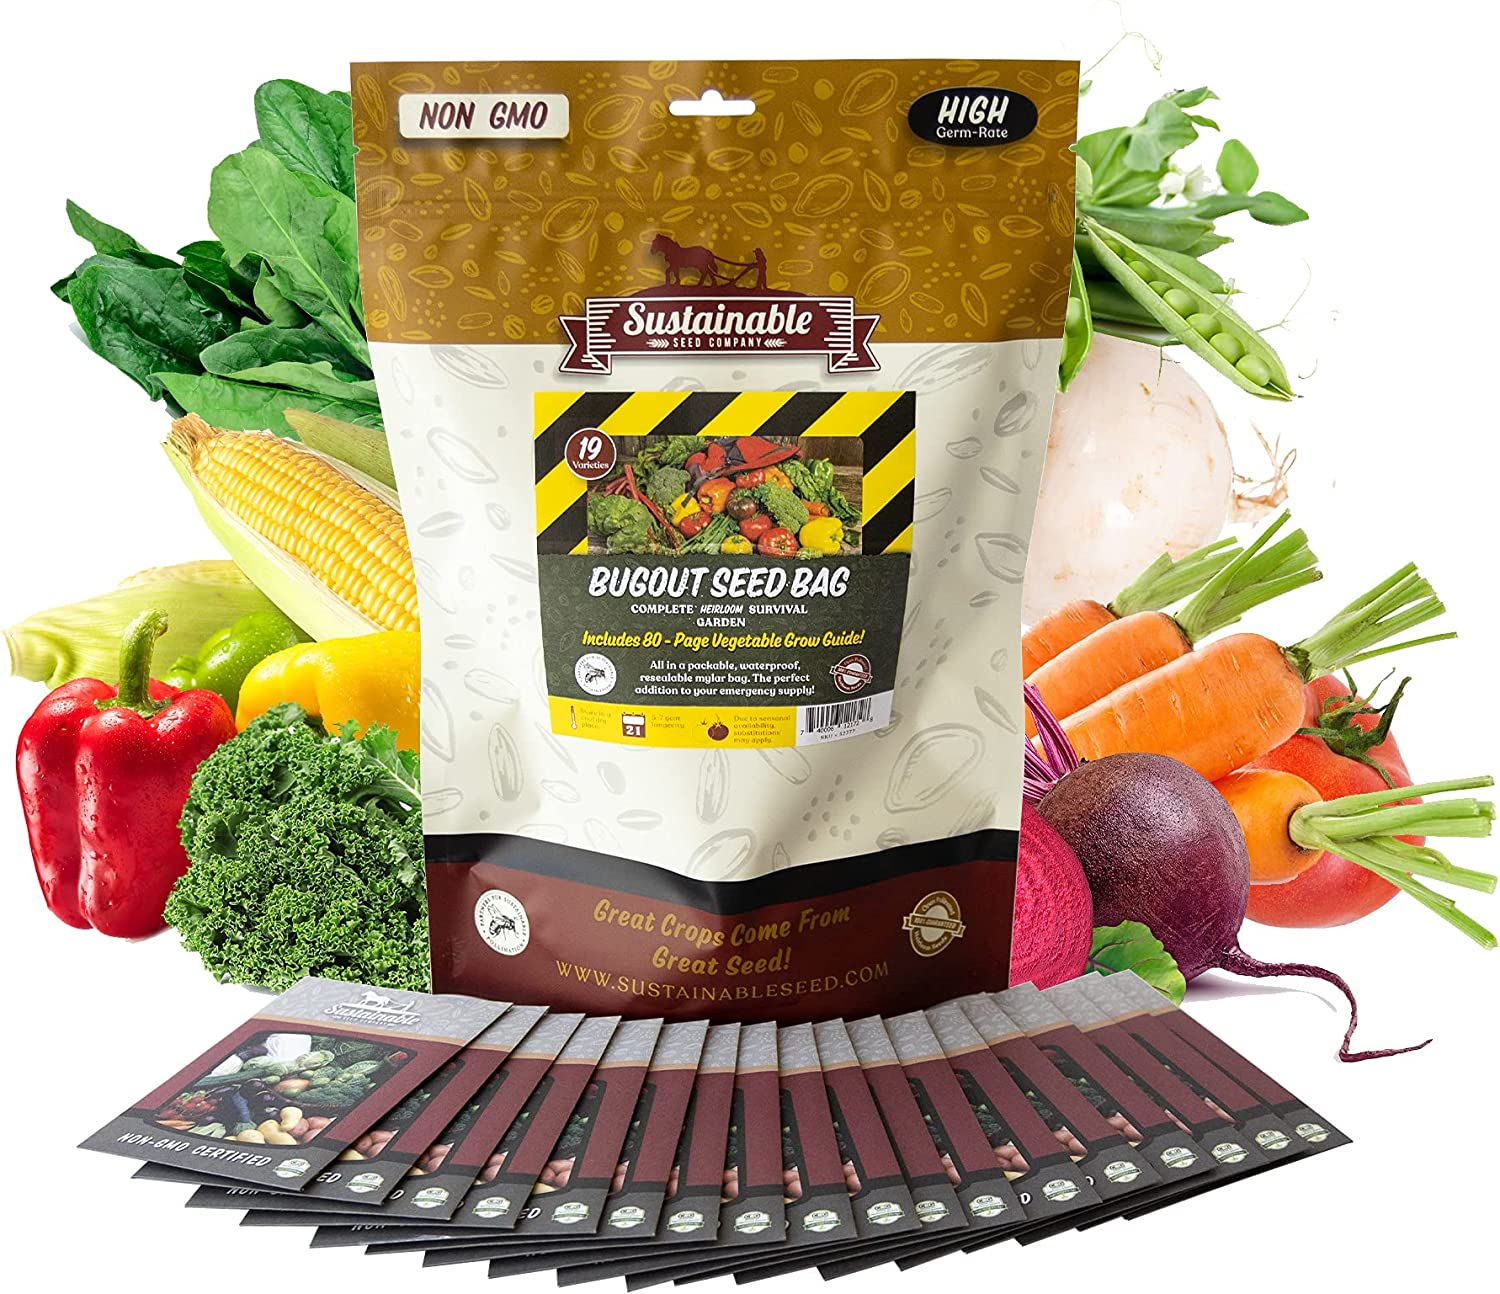 Bug Out Bag Survival Garden Vegetable & Herb Seeds - ~12,000 Seeds - Collection of 19 Heirloom Seed Varieties for Emergency Seed Vault - Bean, Beet, Carrot, Corn, Kale, Onion, Pepper, Squash & 11 More